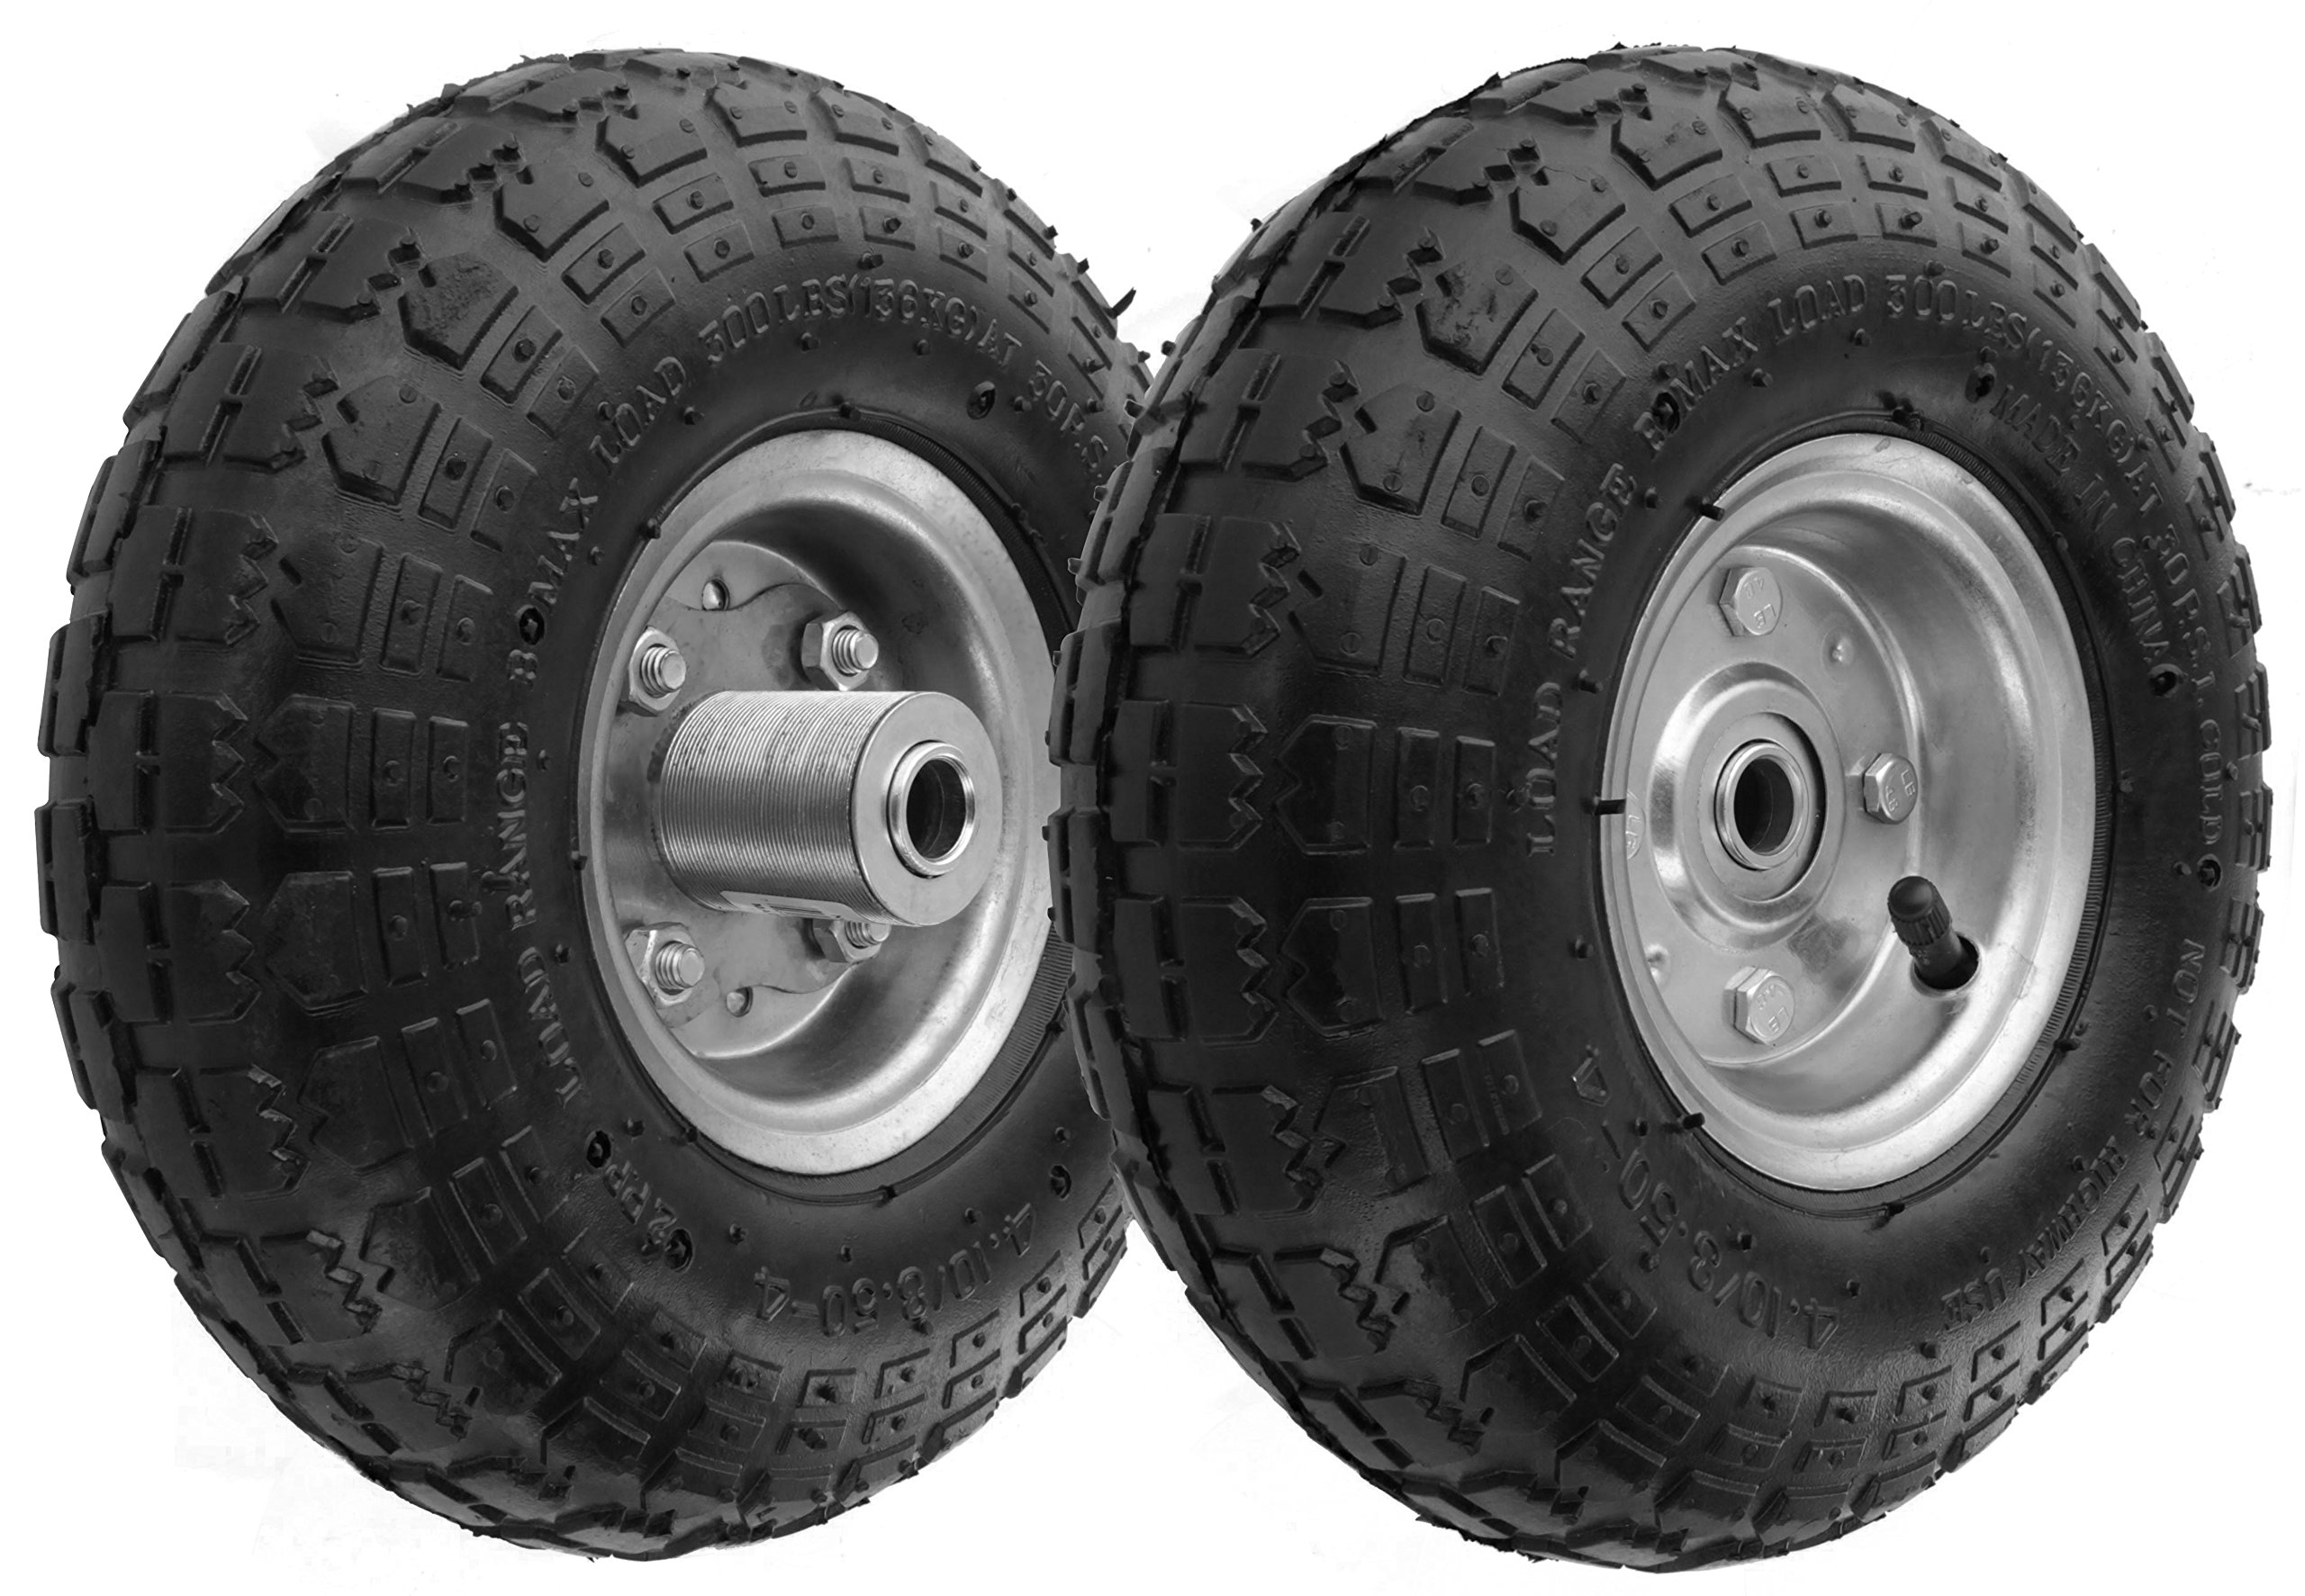 RamPro 10'' All Purpose Utility Air Tires/Wheels with a 5/8'' Diameter Hole with Double Sealed Bearings (Pack of 2)